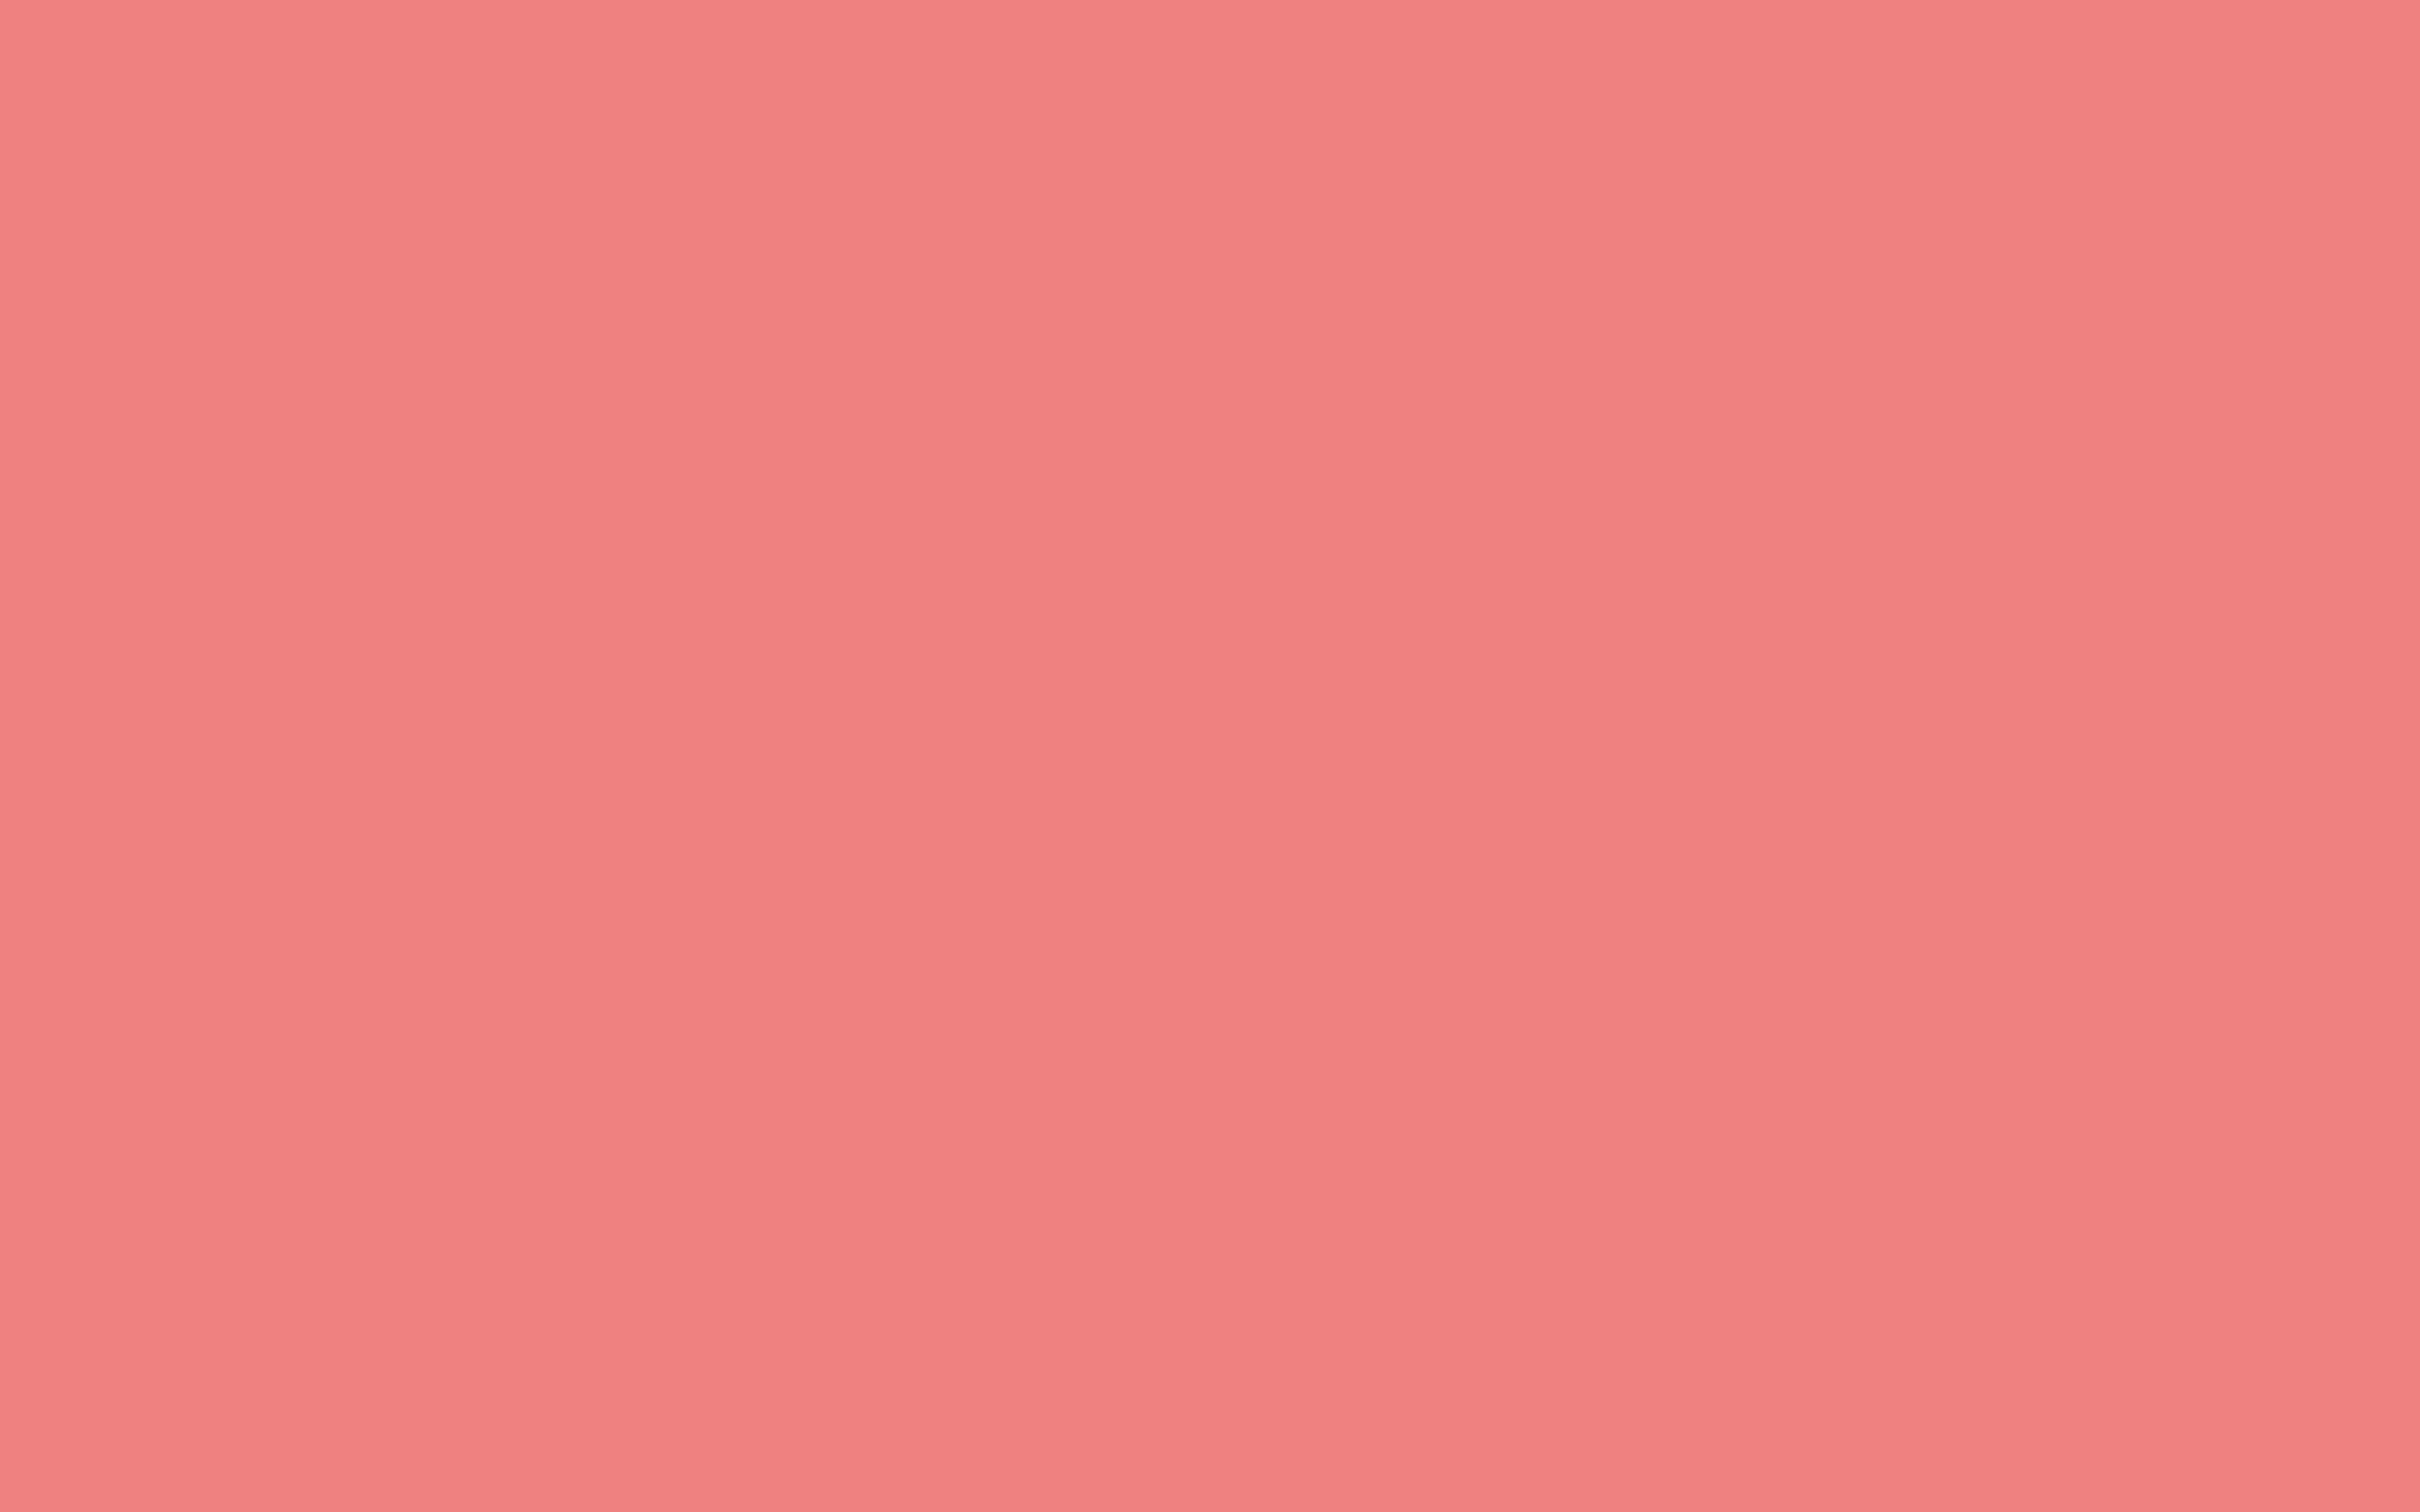 2560x1600 Light Coral Solid Color Background